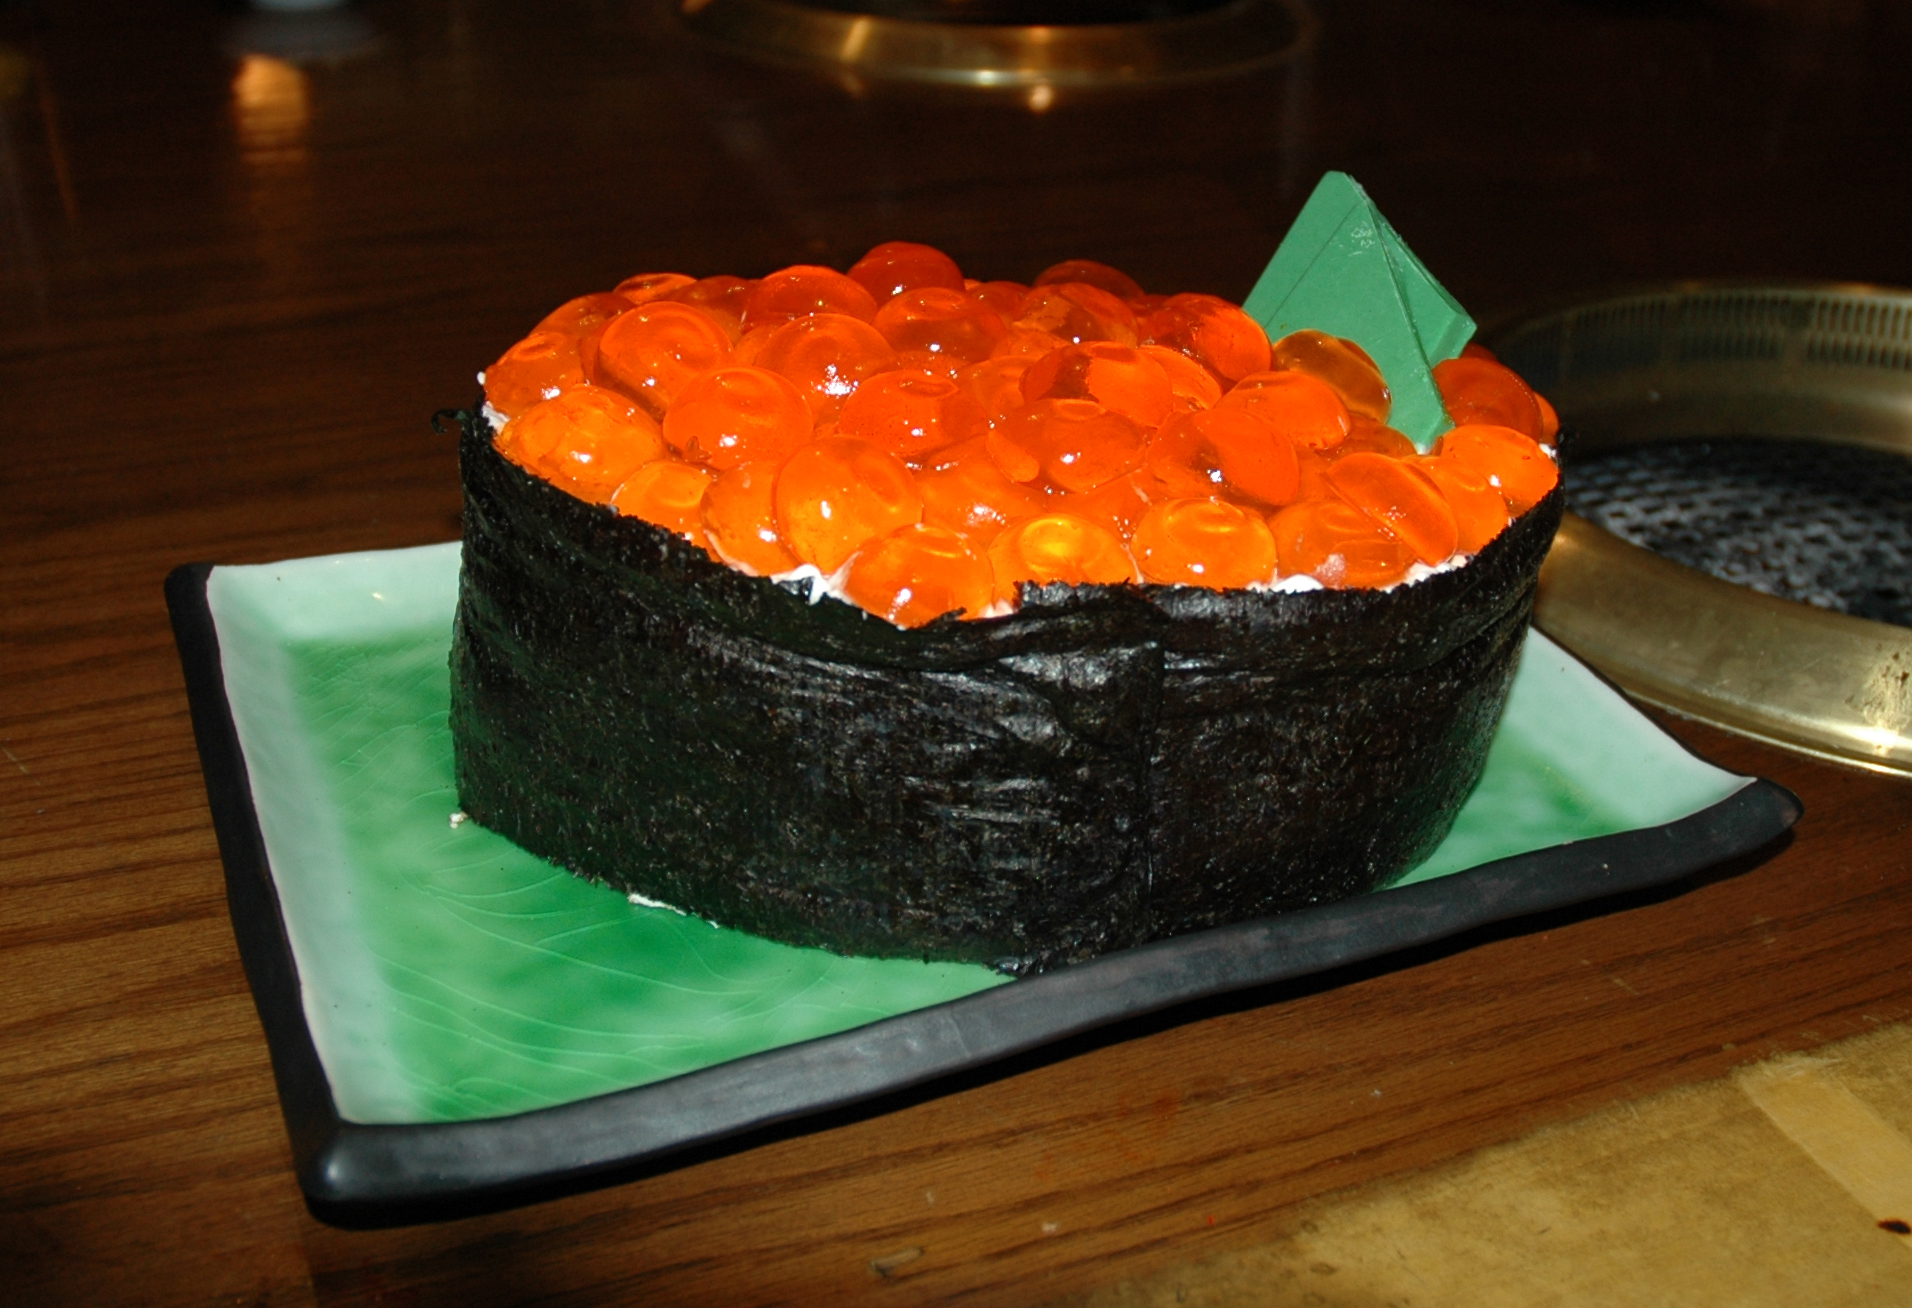 File:Sushi-Cake-1 (439784160).jpg - Wikimedia Commons